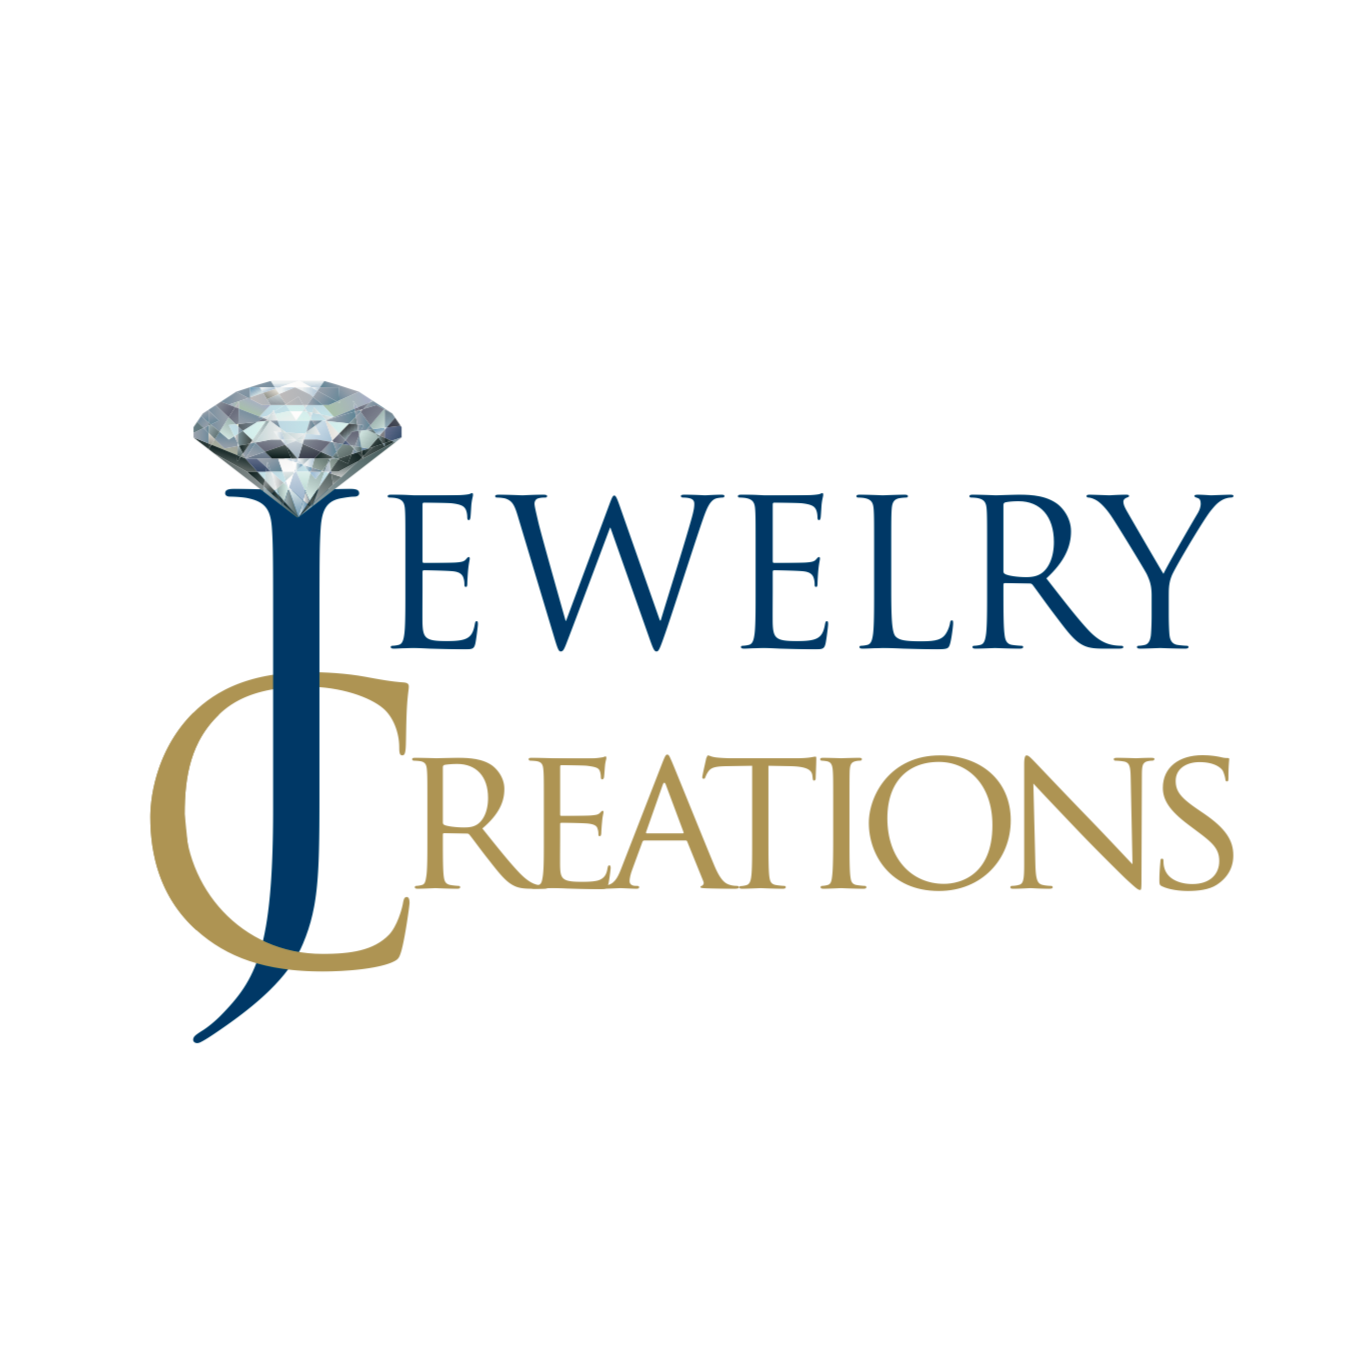 jewelry creations.png